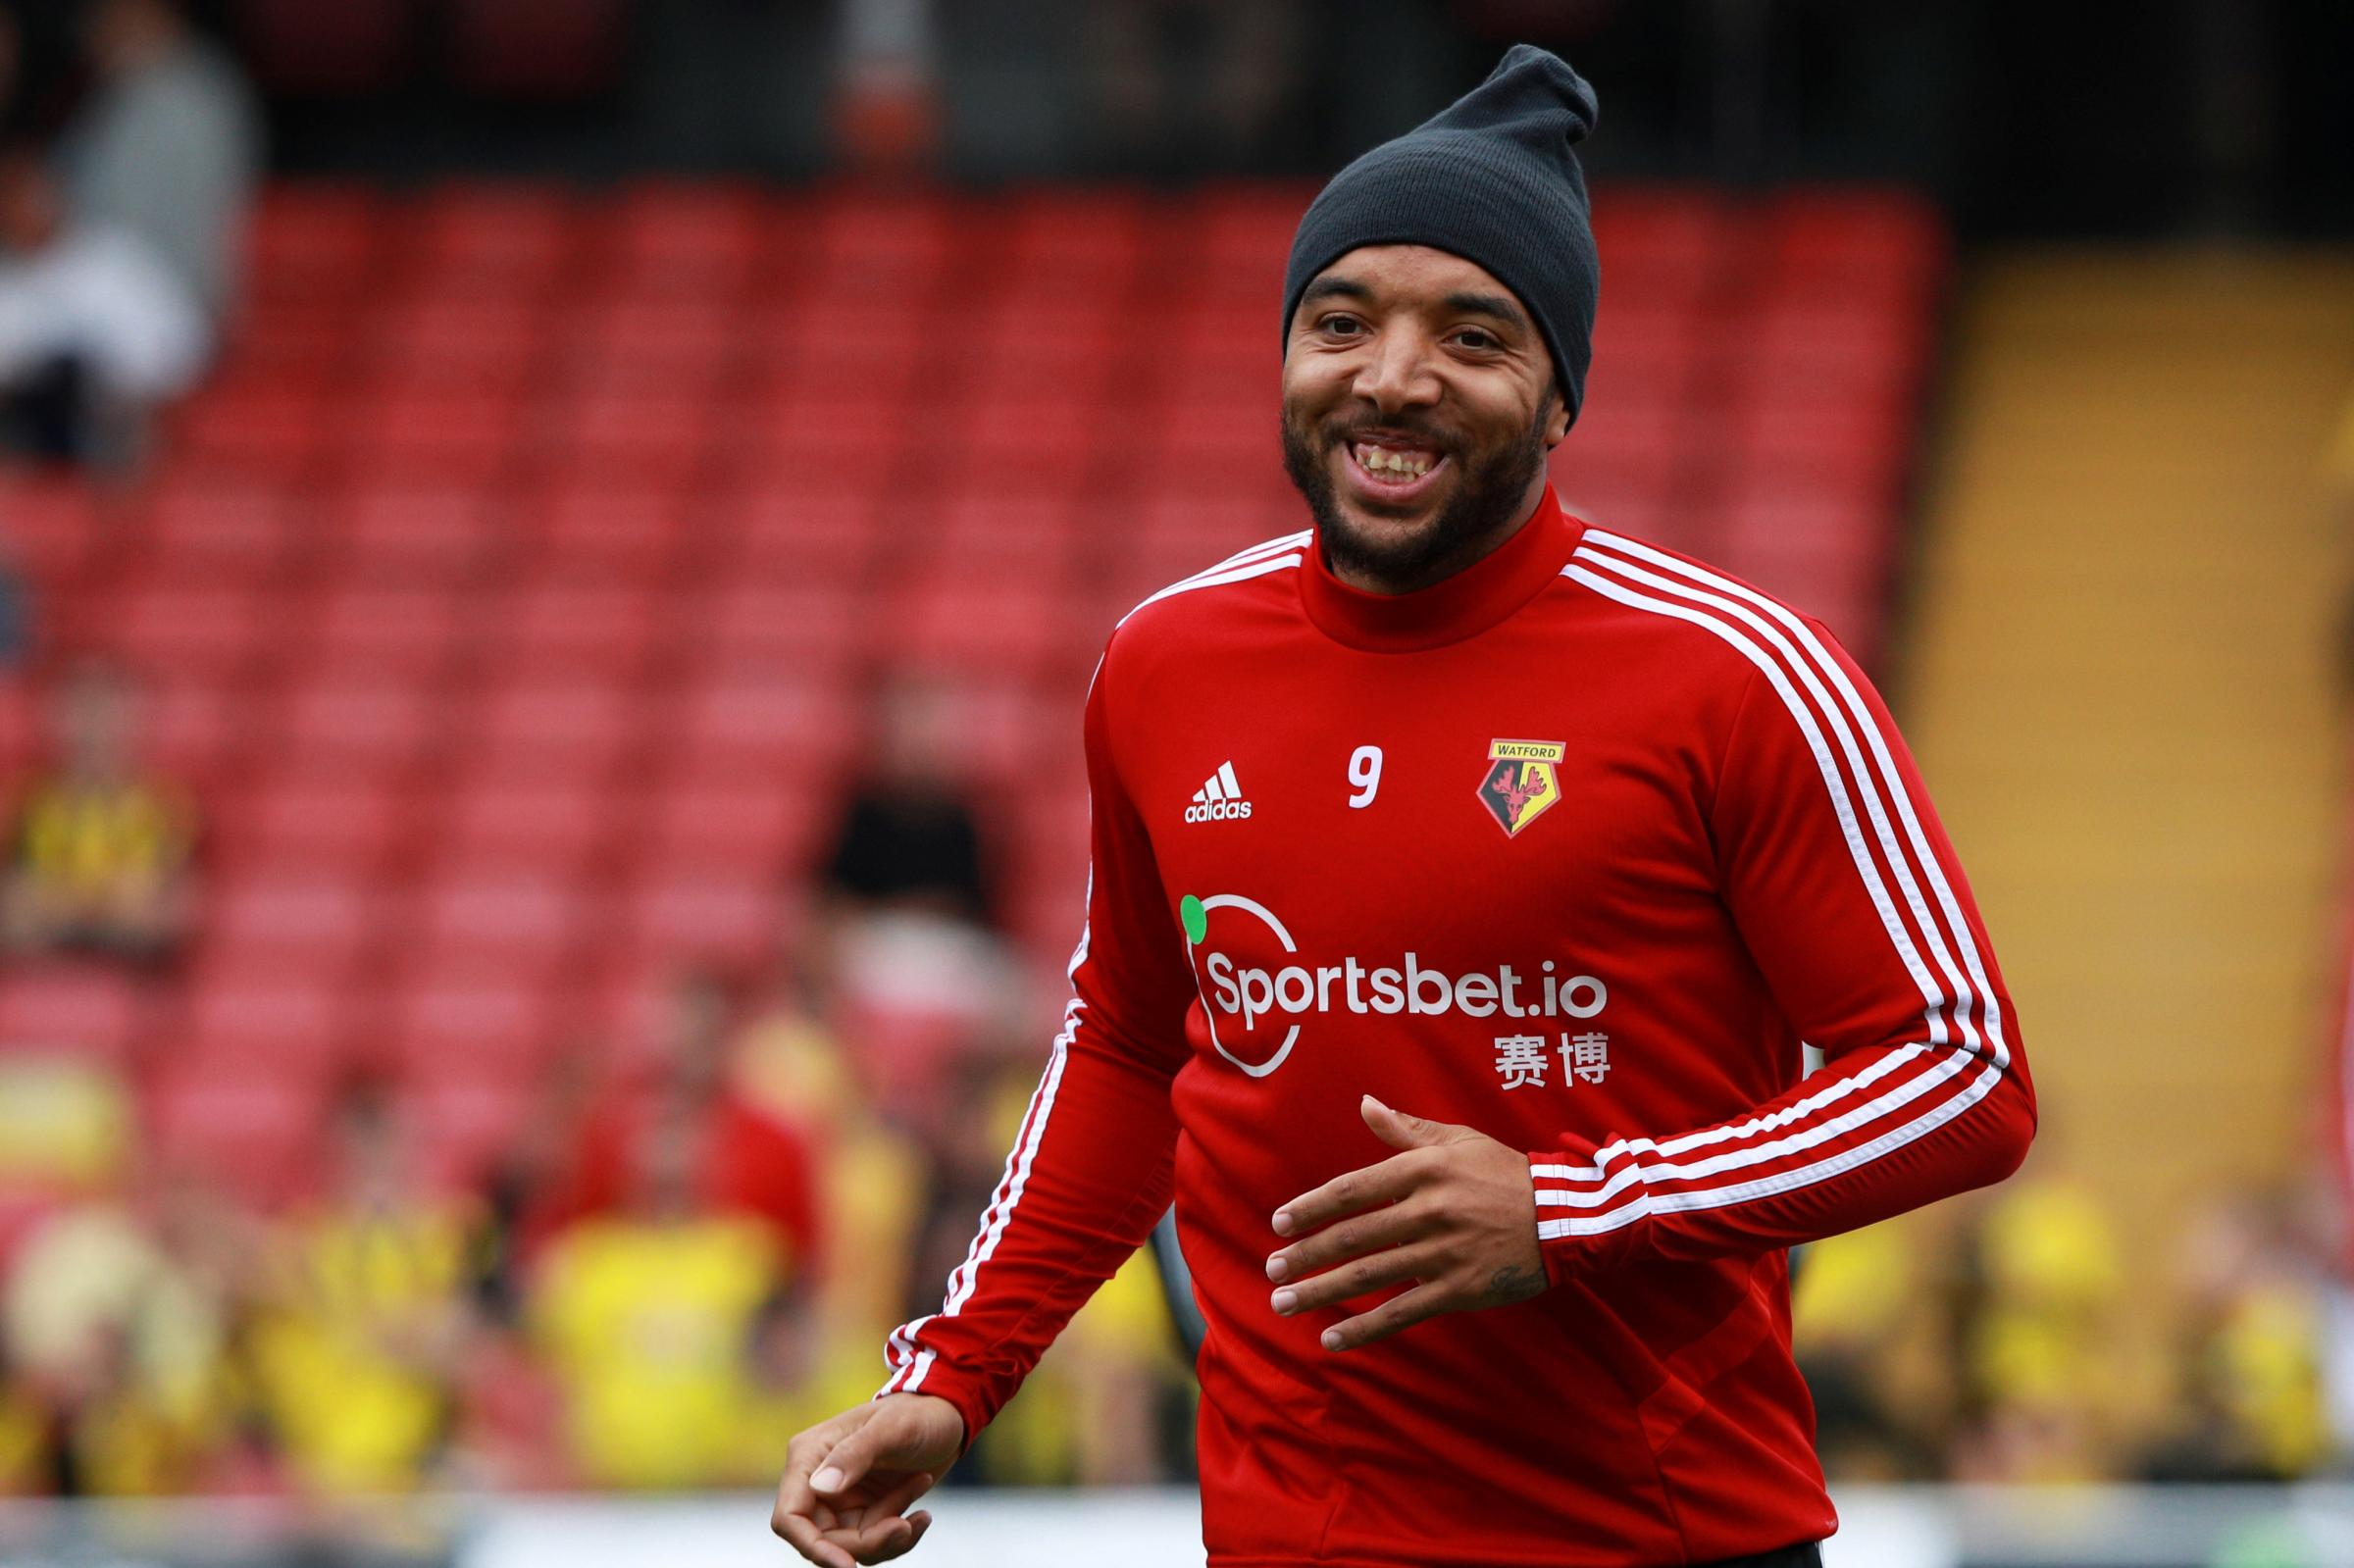 Watford captain Troy Deeney said he has no interest in playing for Jamaica